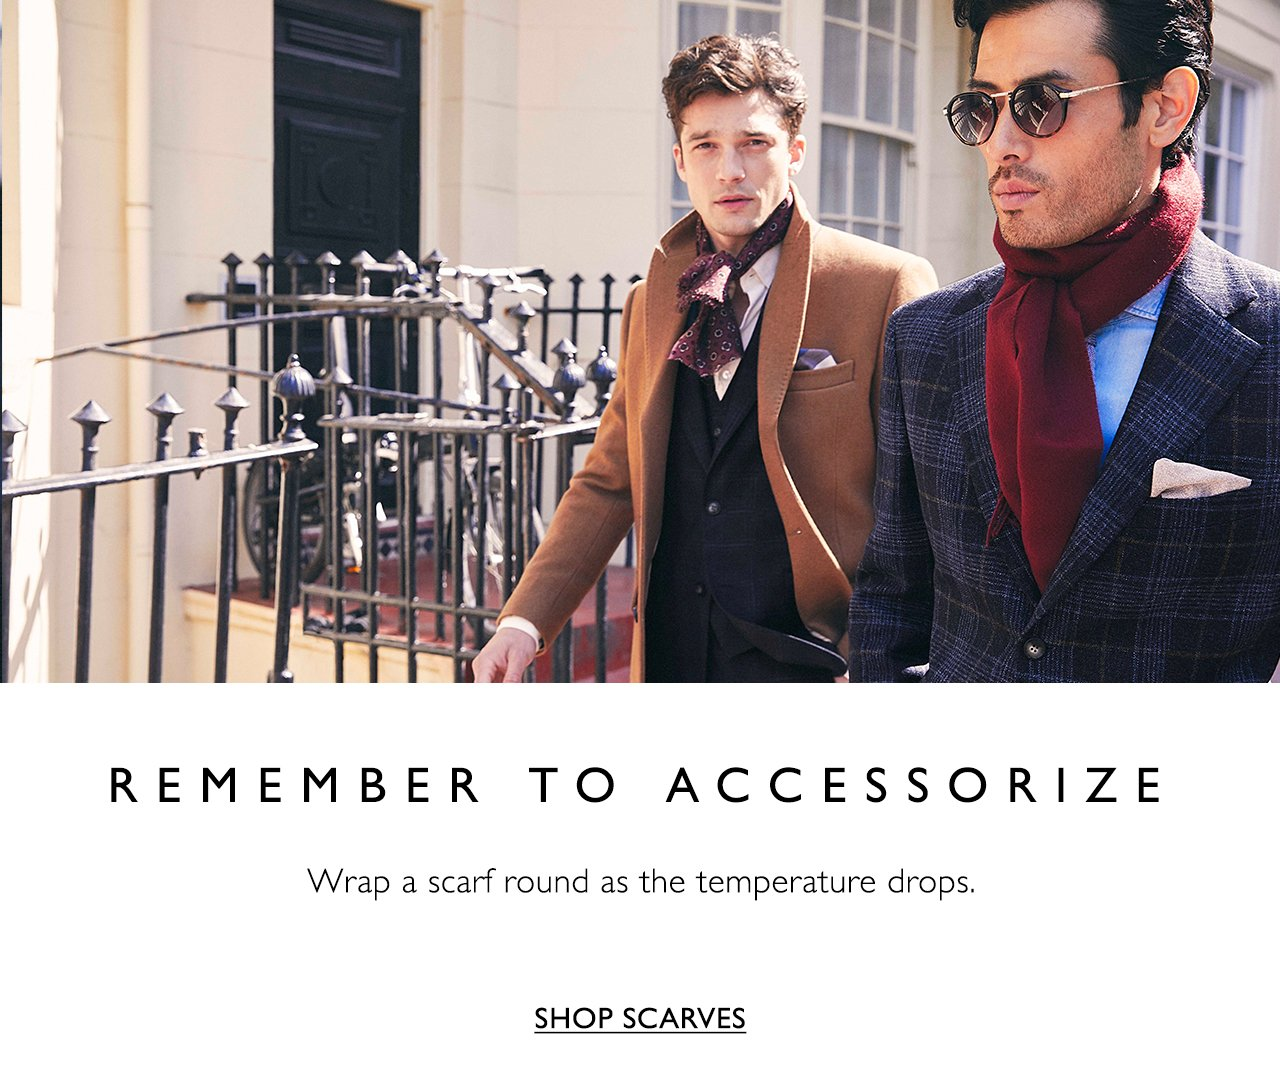 Remember to accessorize. Wrap a scarf round as the temperature drops. Shop scarves.